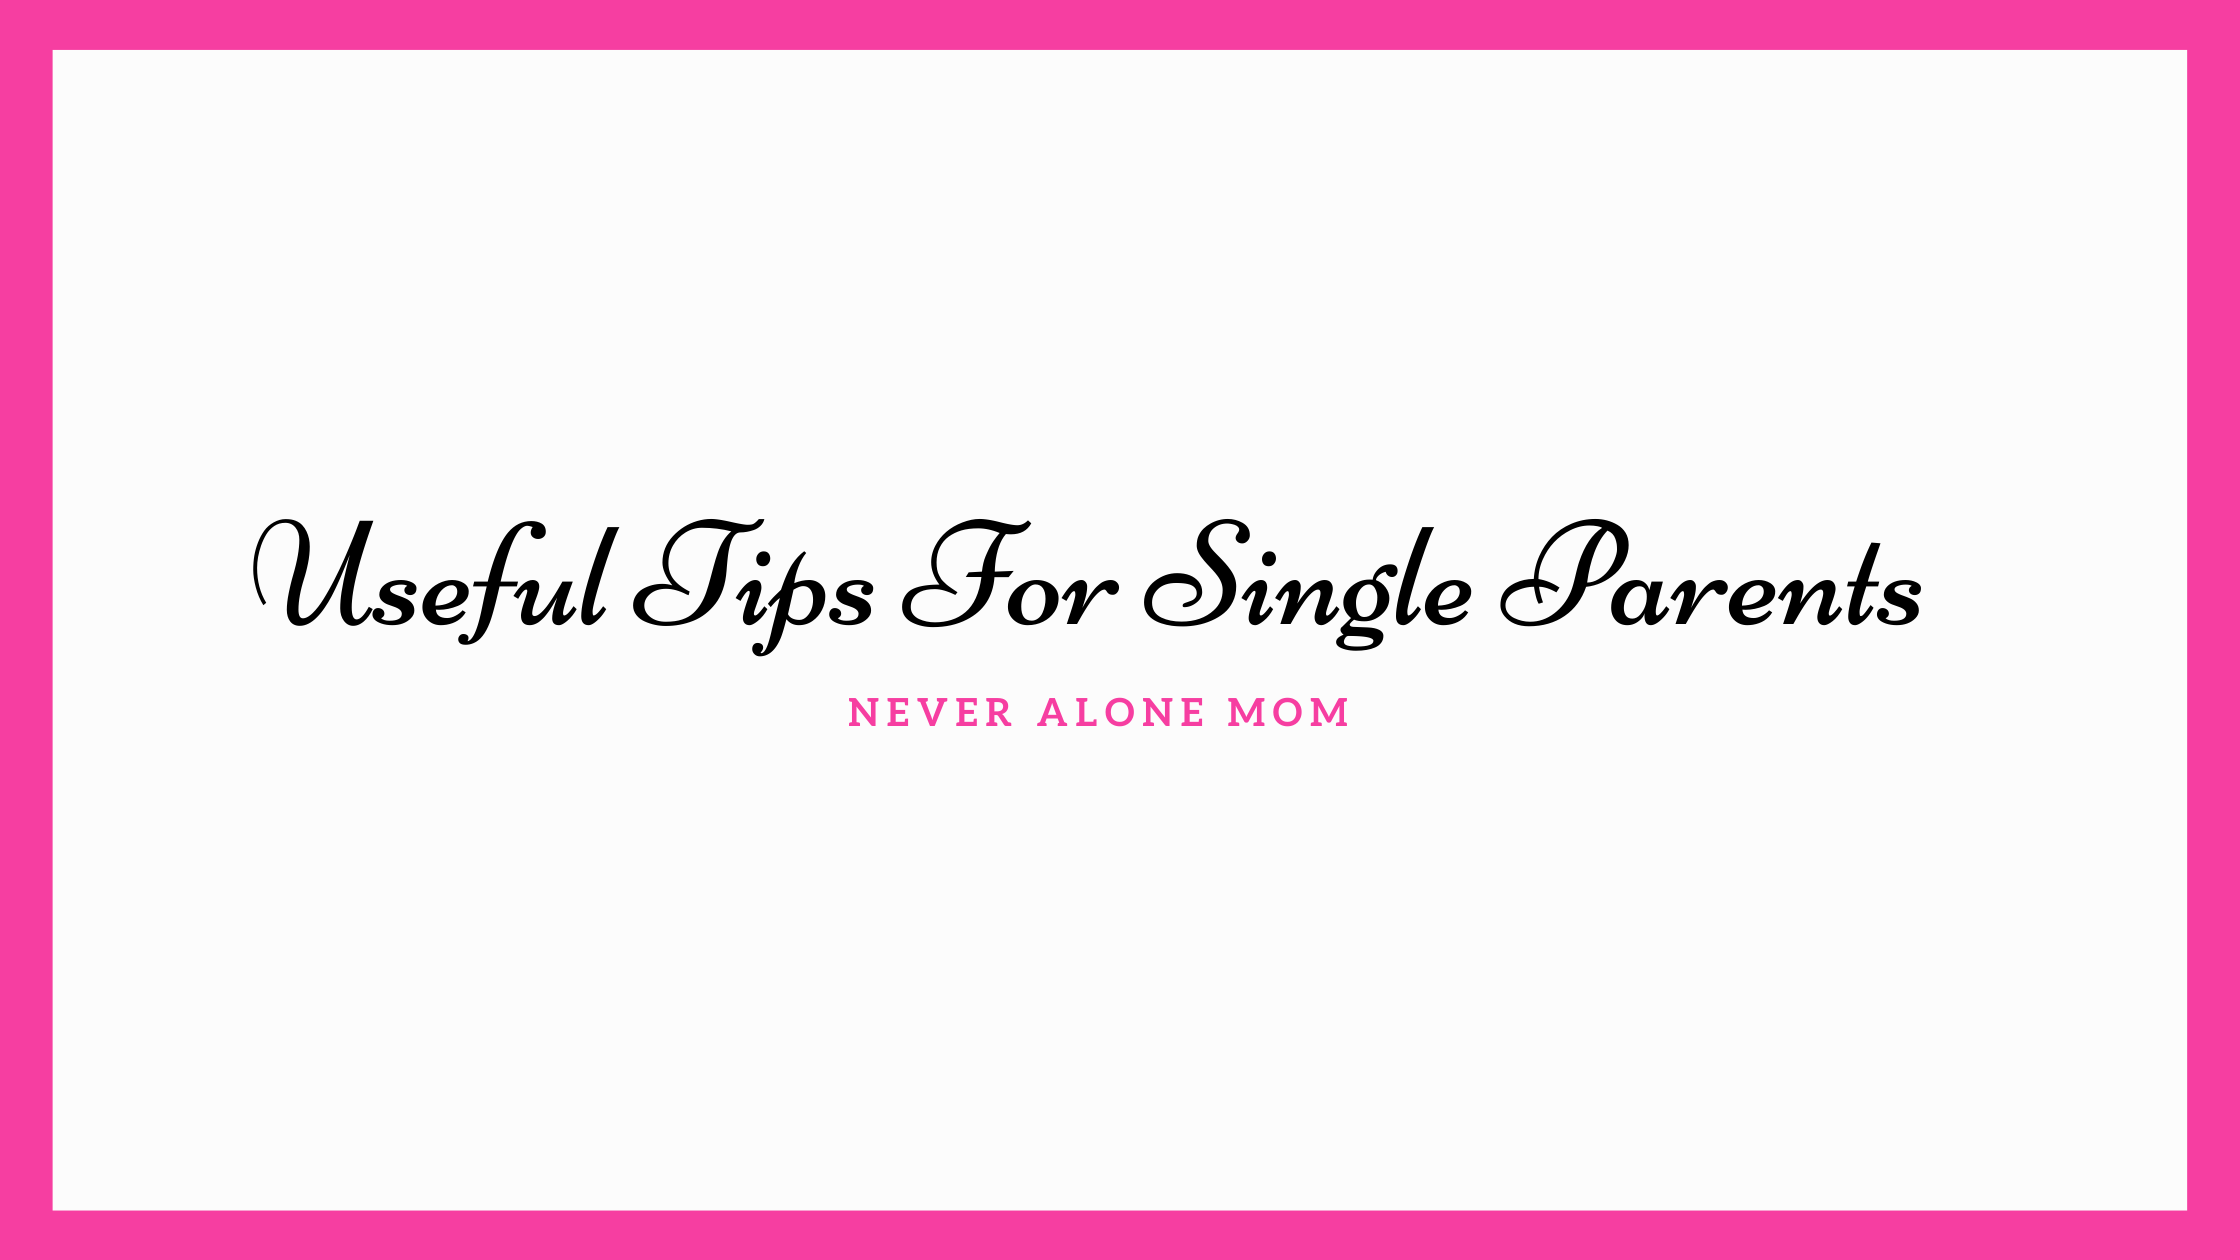 Tips to help single parents |neveralonemom.com